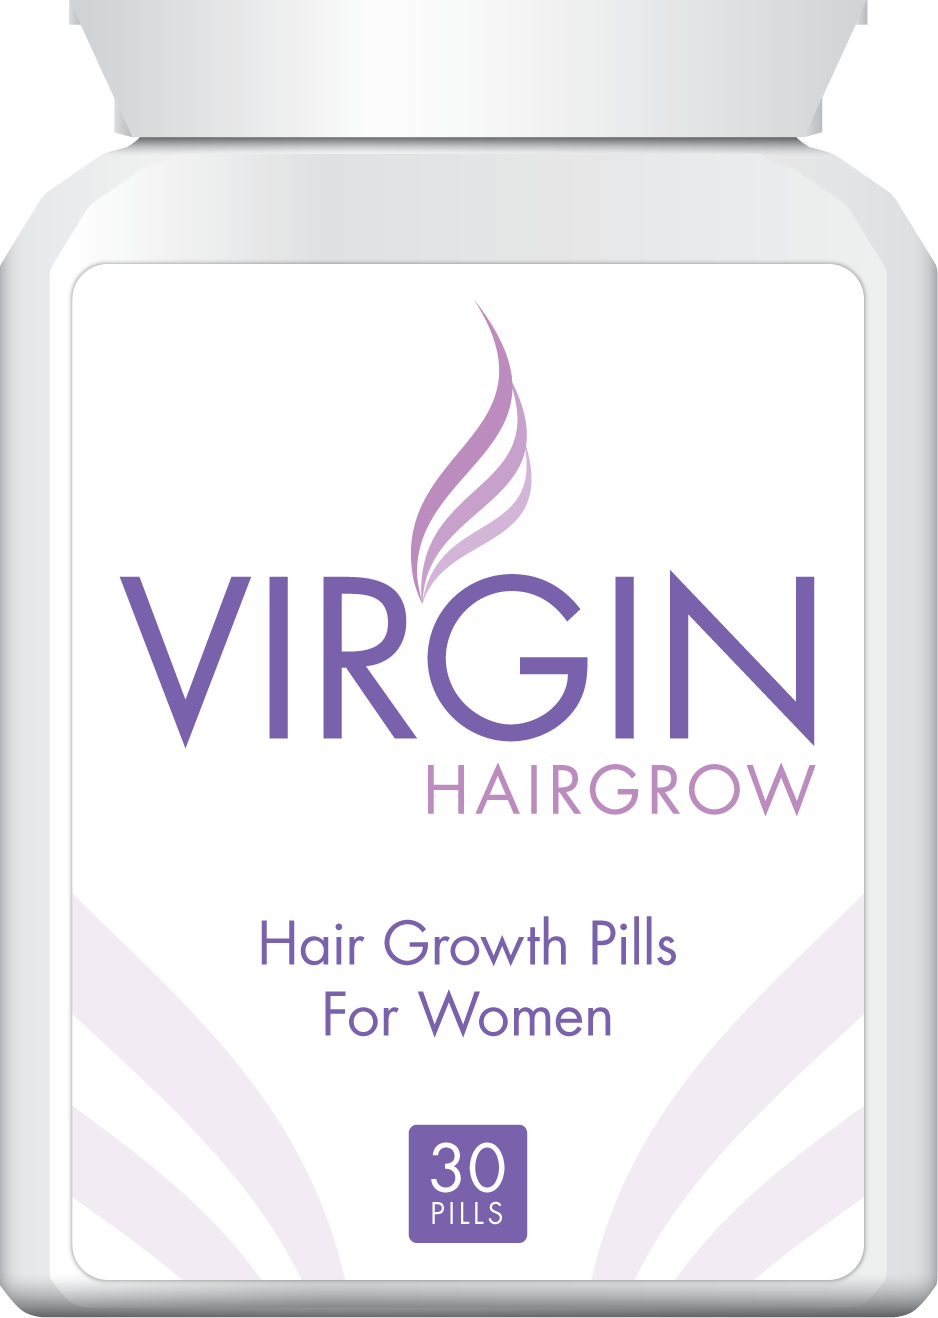 Stimulate Hair Growth Follicles Naturally